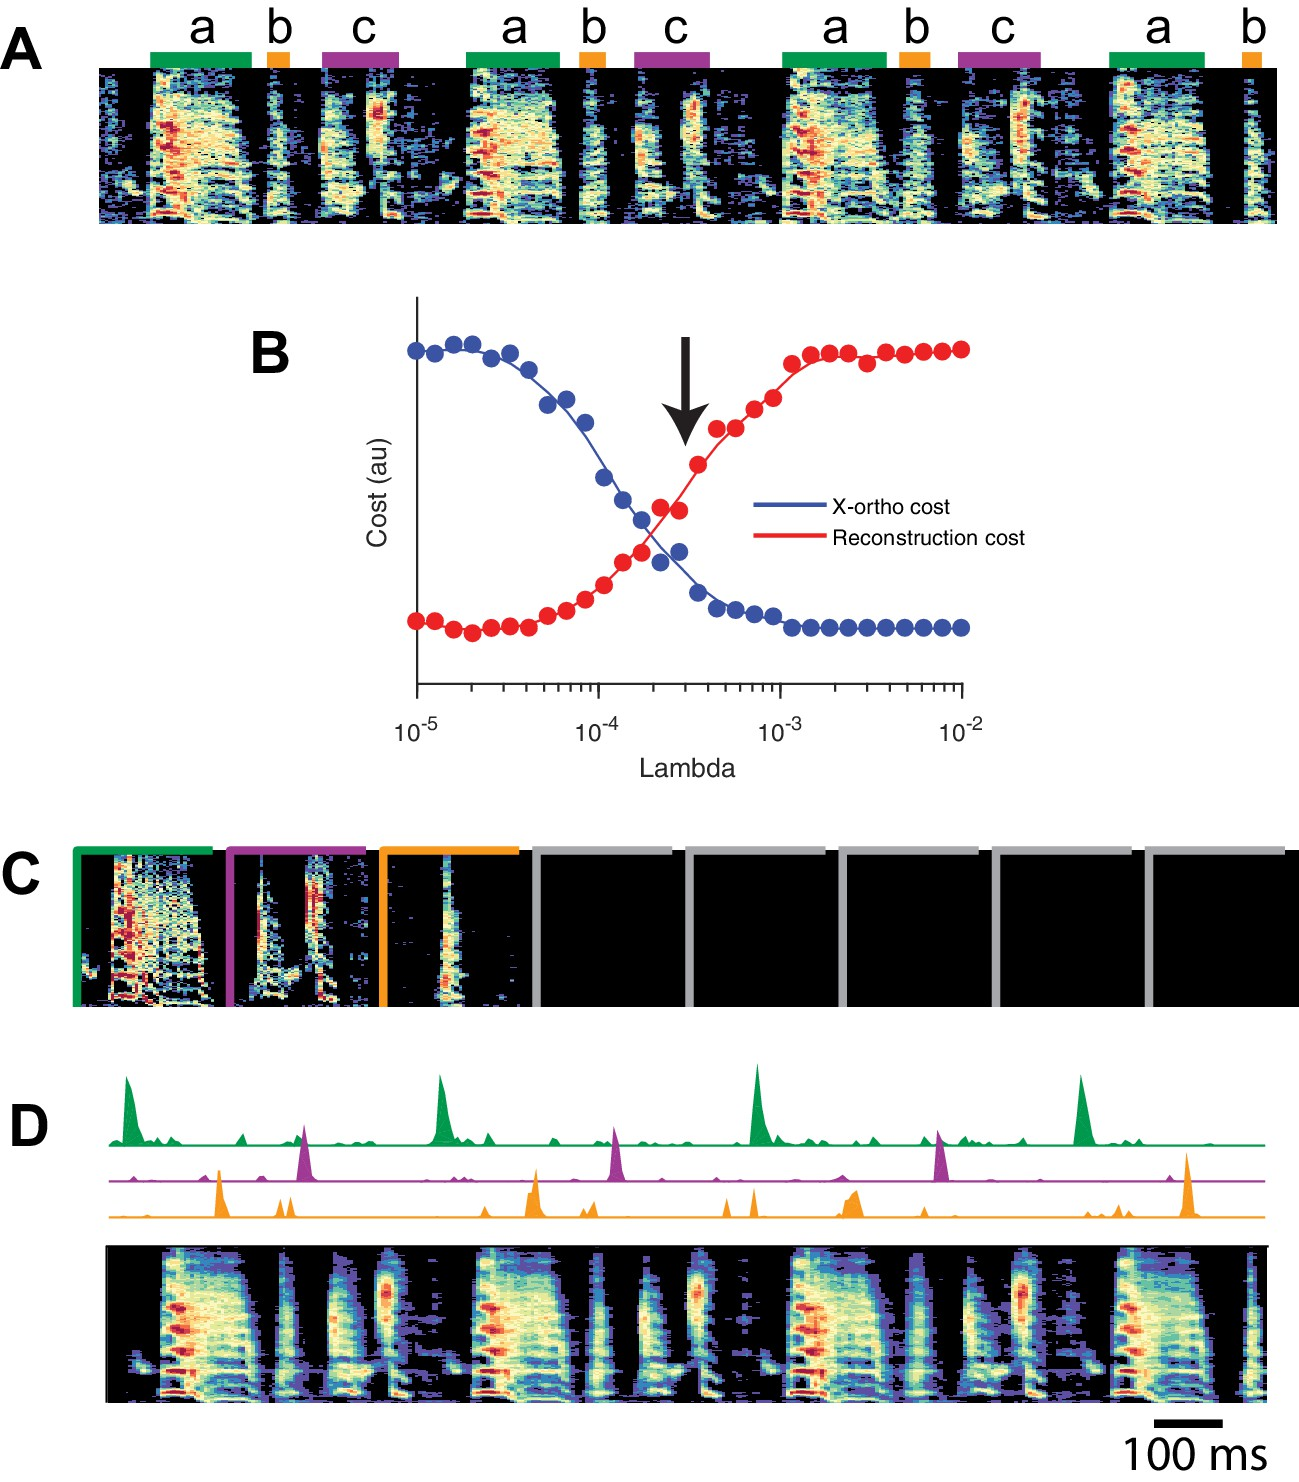 Unsupervised discovery of temporal sequences in high